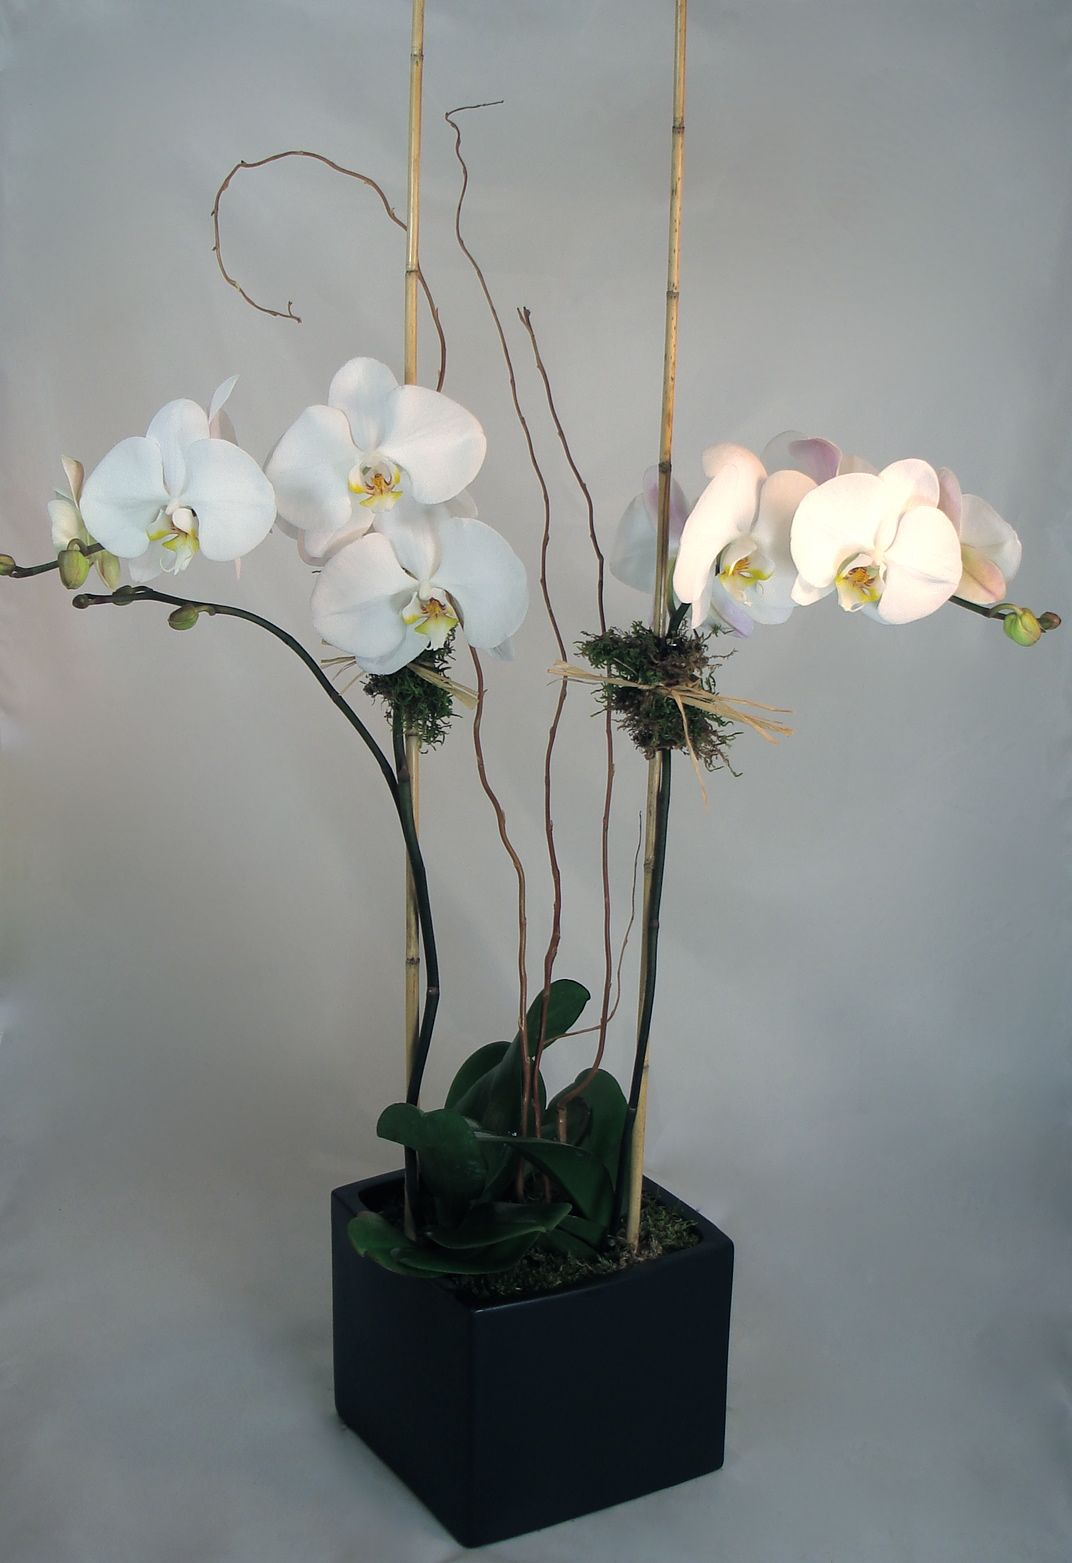 Potted Phalaenopsis Orchid Plant 2 Stems